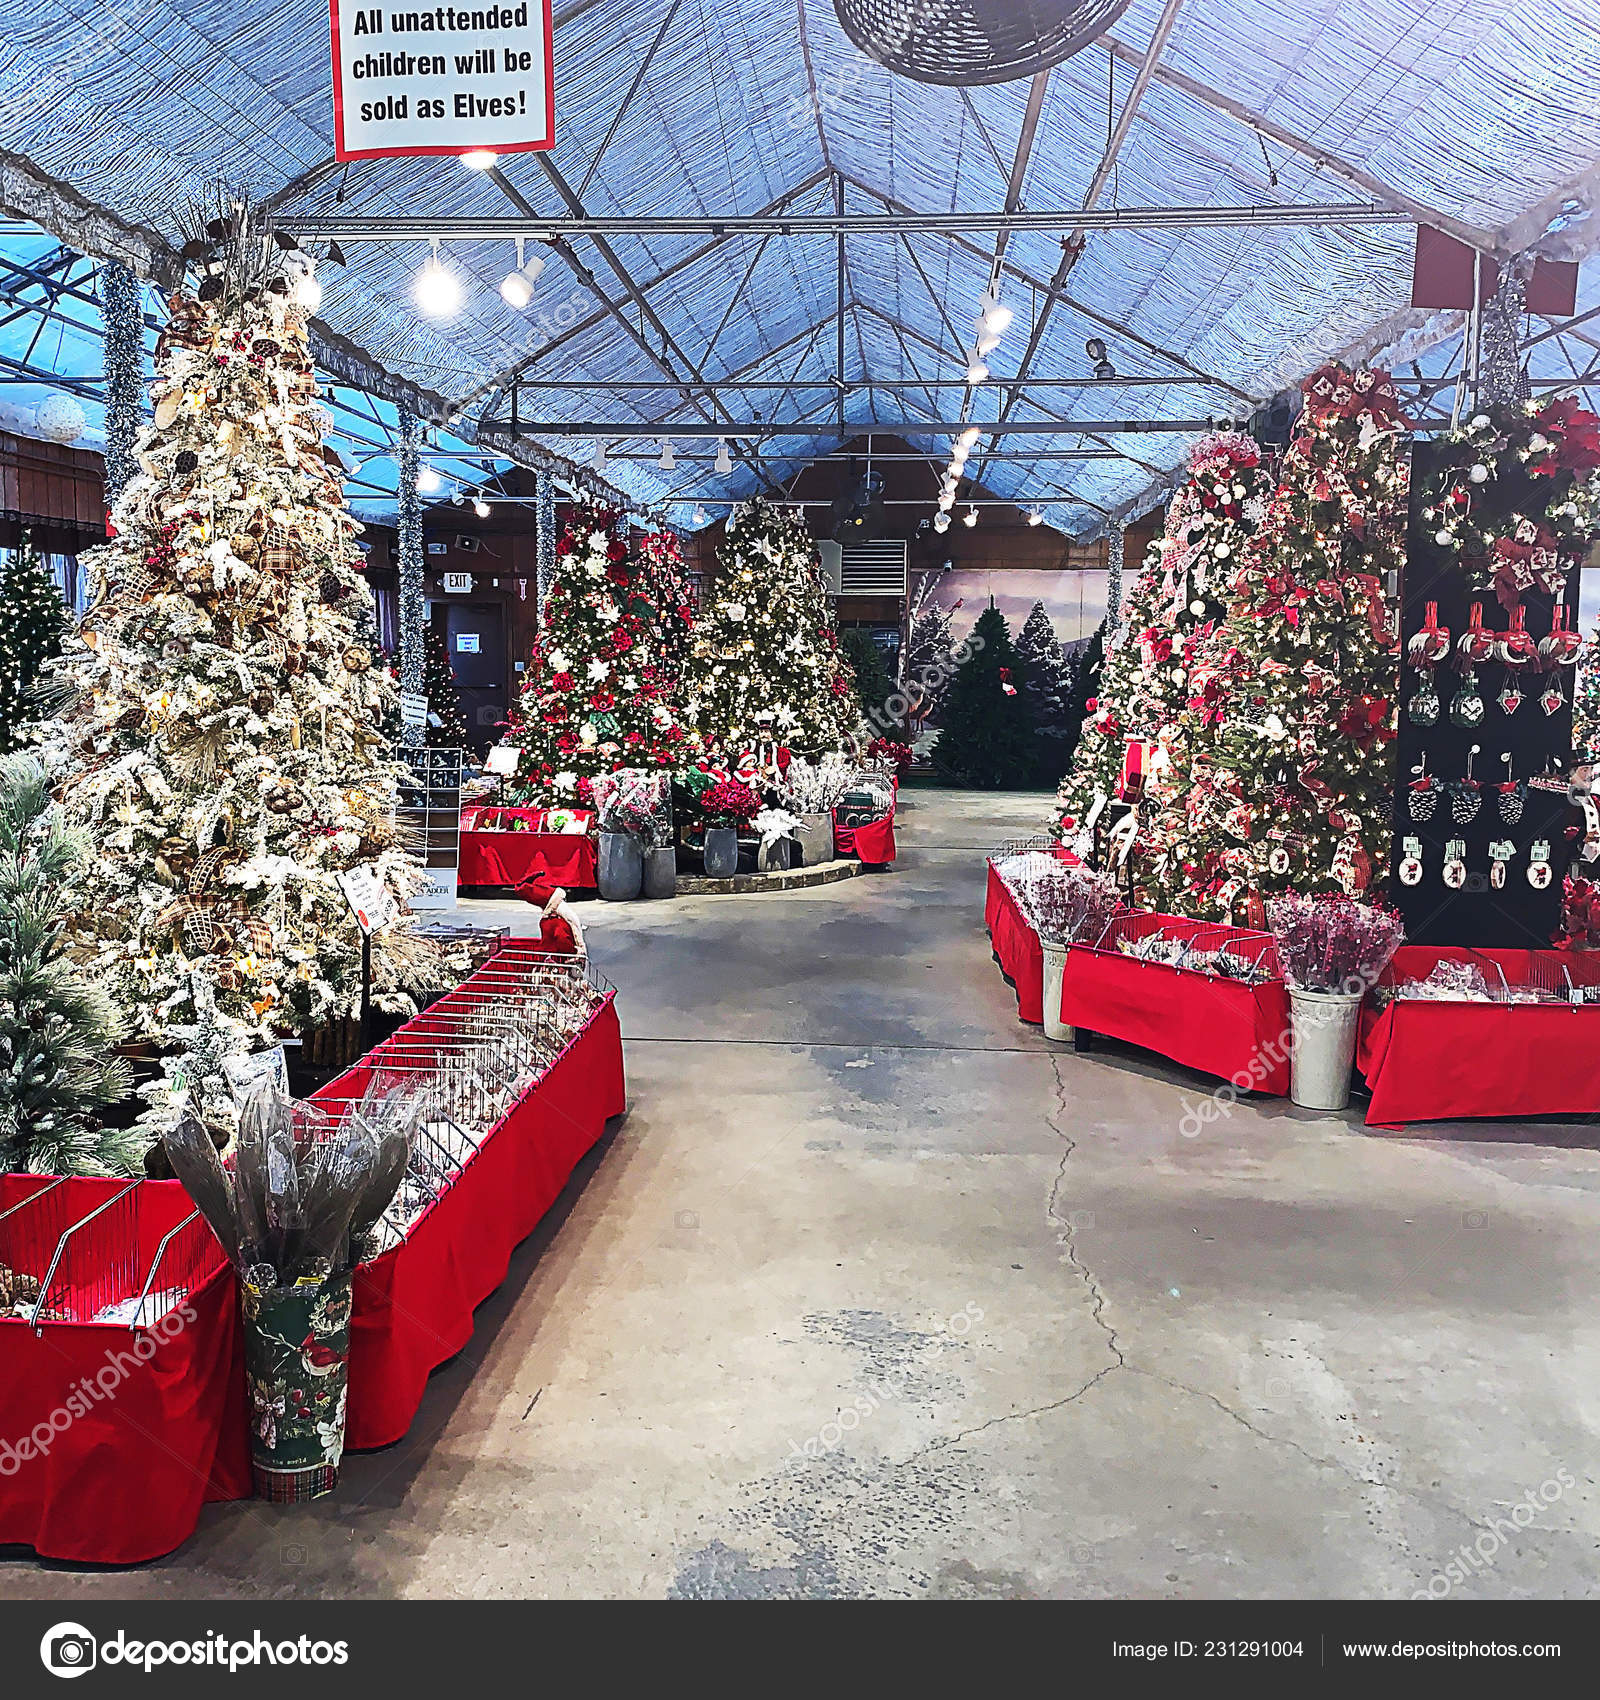 Beautifully decorated Christmas trees in large warehouse facility with ornaments below in containers for sale to the public at a local market.